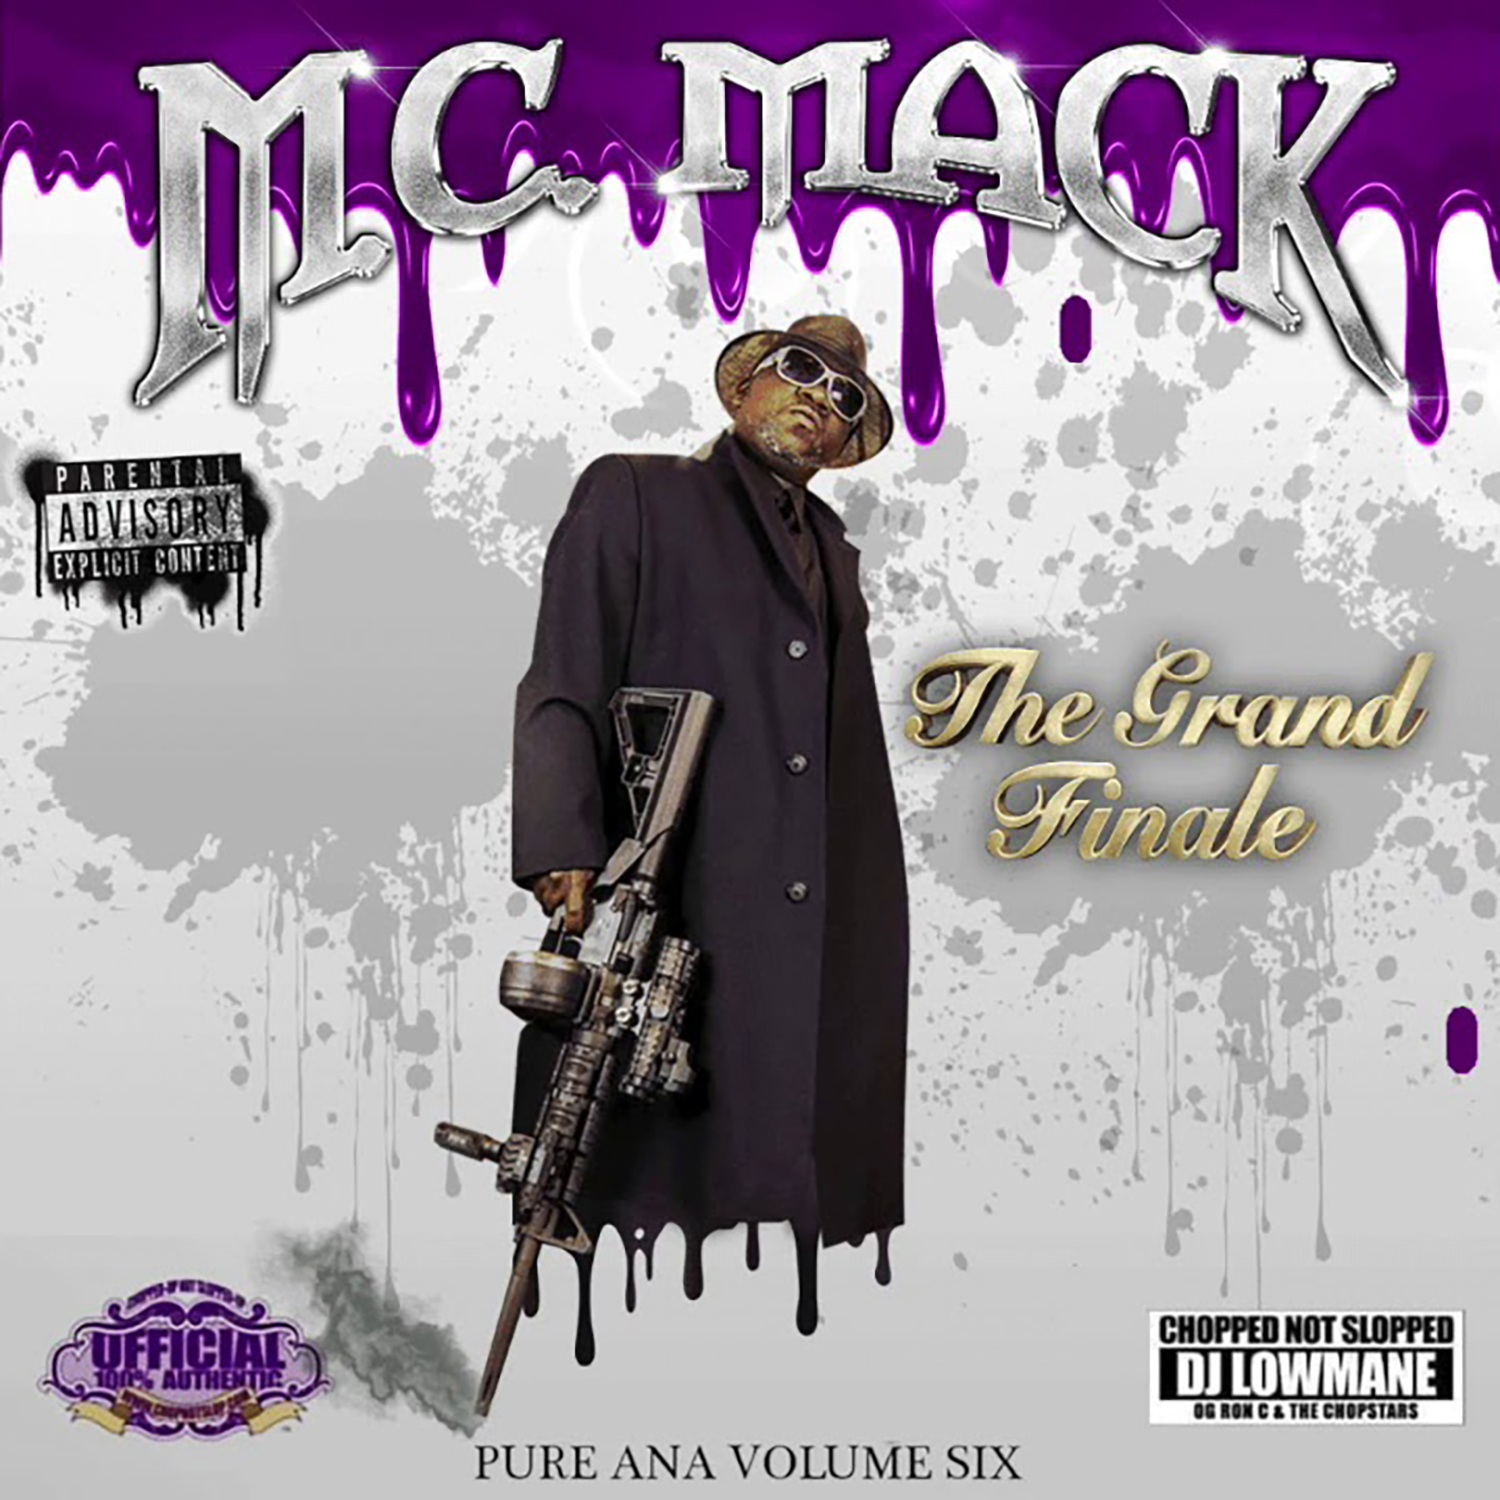 M.C. Mack - The Grand Finale: Pure Ana Vol. 6 (Chopped Not Slopped)